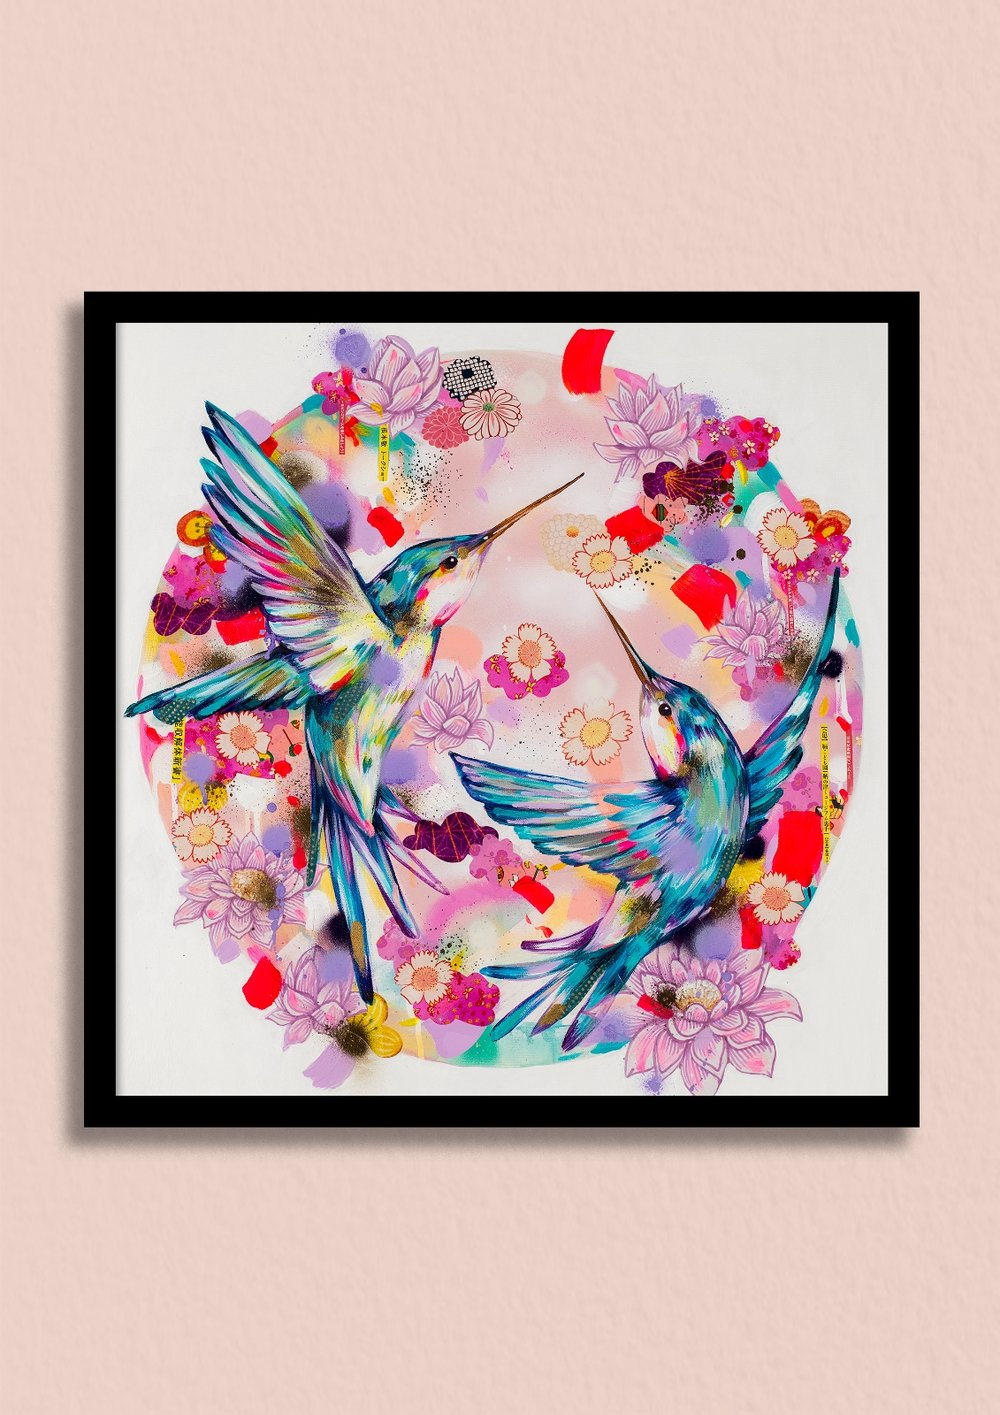 OSAKA SUNRISE - Wake up to the beautiful glow of a Japanese sunrise, with this spectacular hummingbird print.Unframed giclée print £150Framed giclée print £220